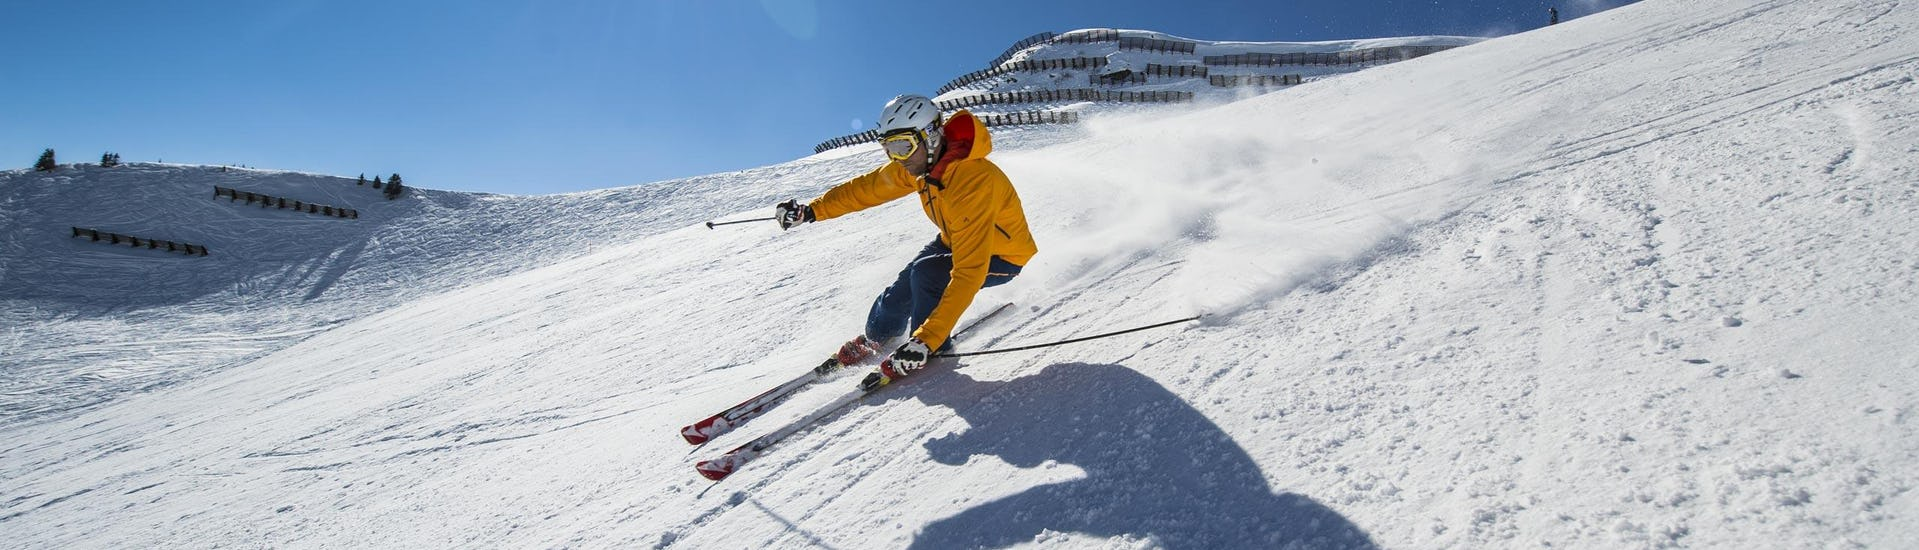 Ski Instructor Private for Adults - All Levels: A skier is skiing down a sunny ski slope while participating in an activity offered by Element3 Skischool Kitzbühel.